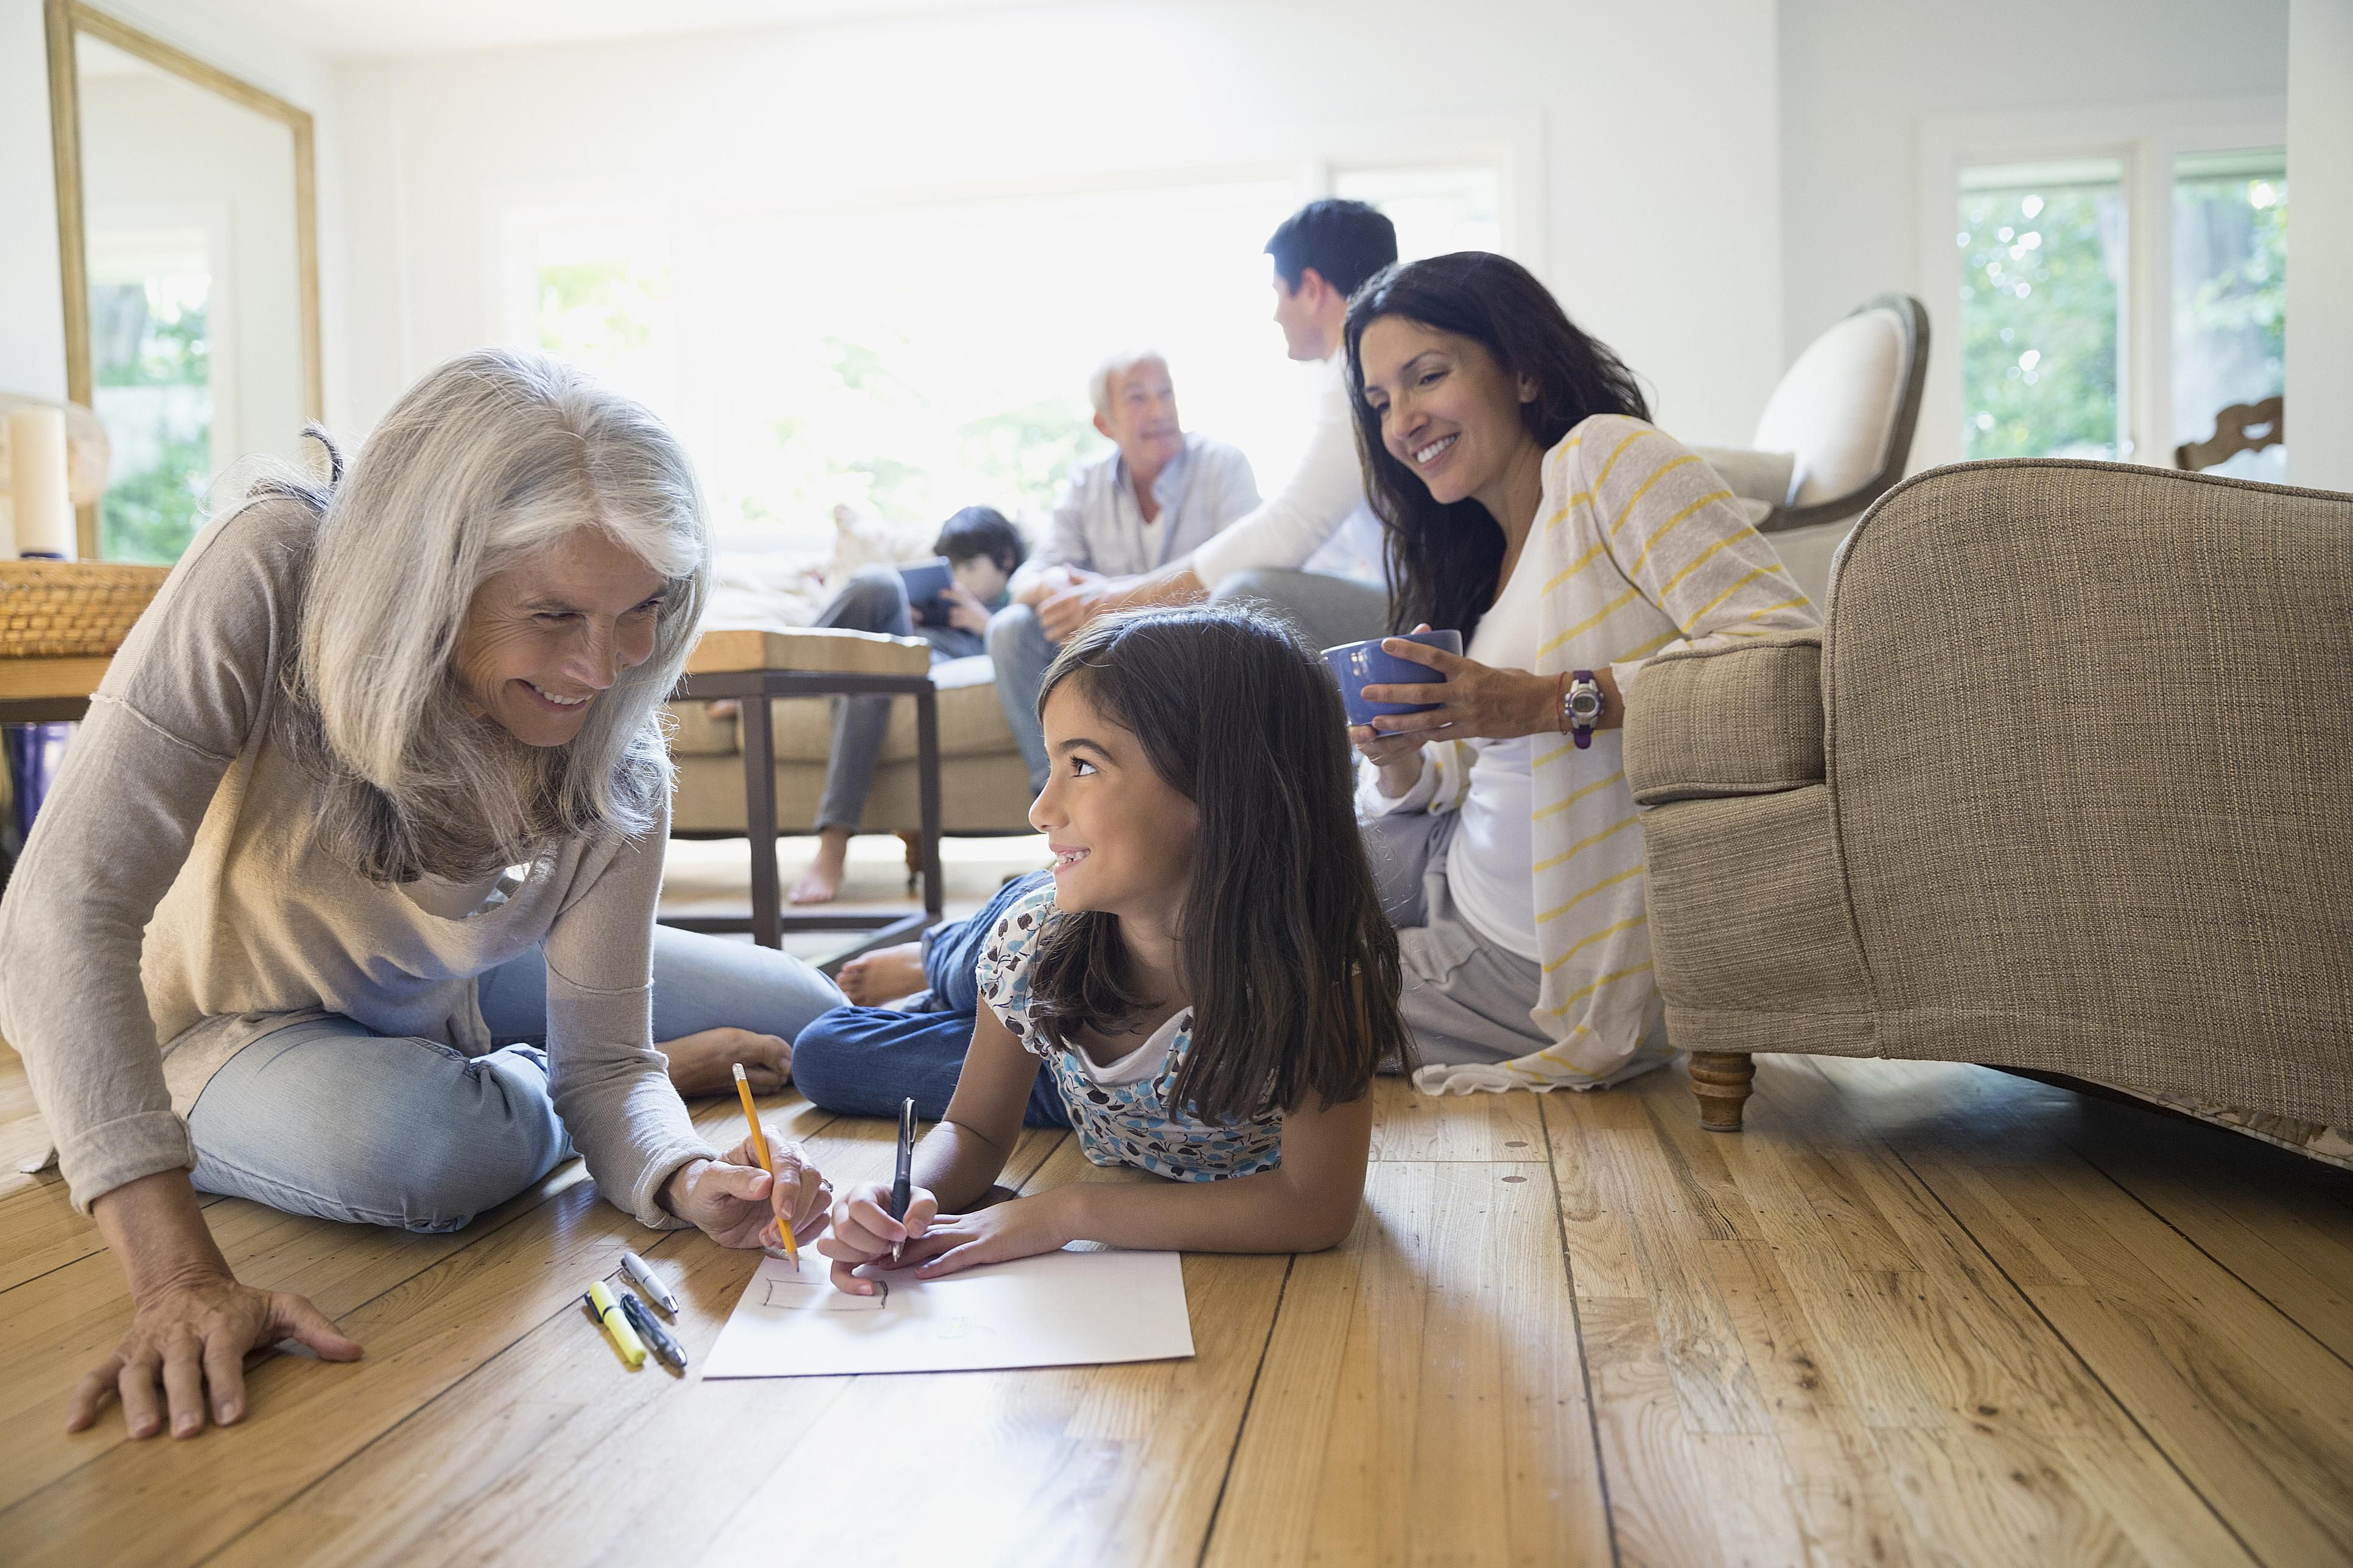 grandmother and granddaughter coloring in living room